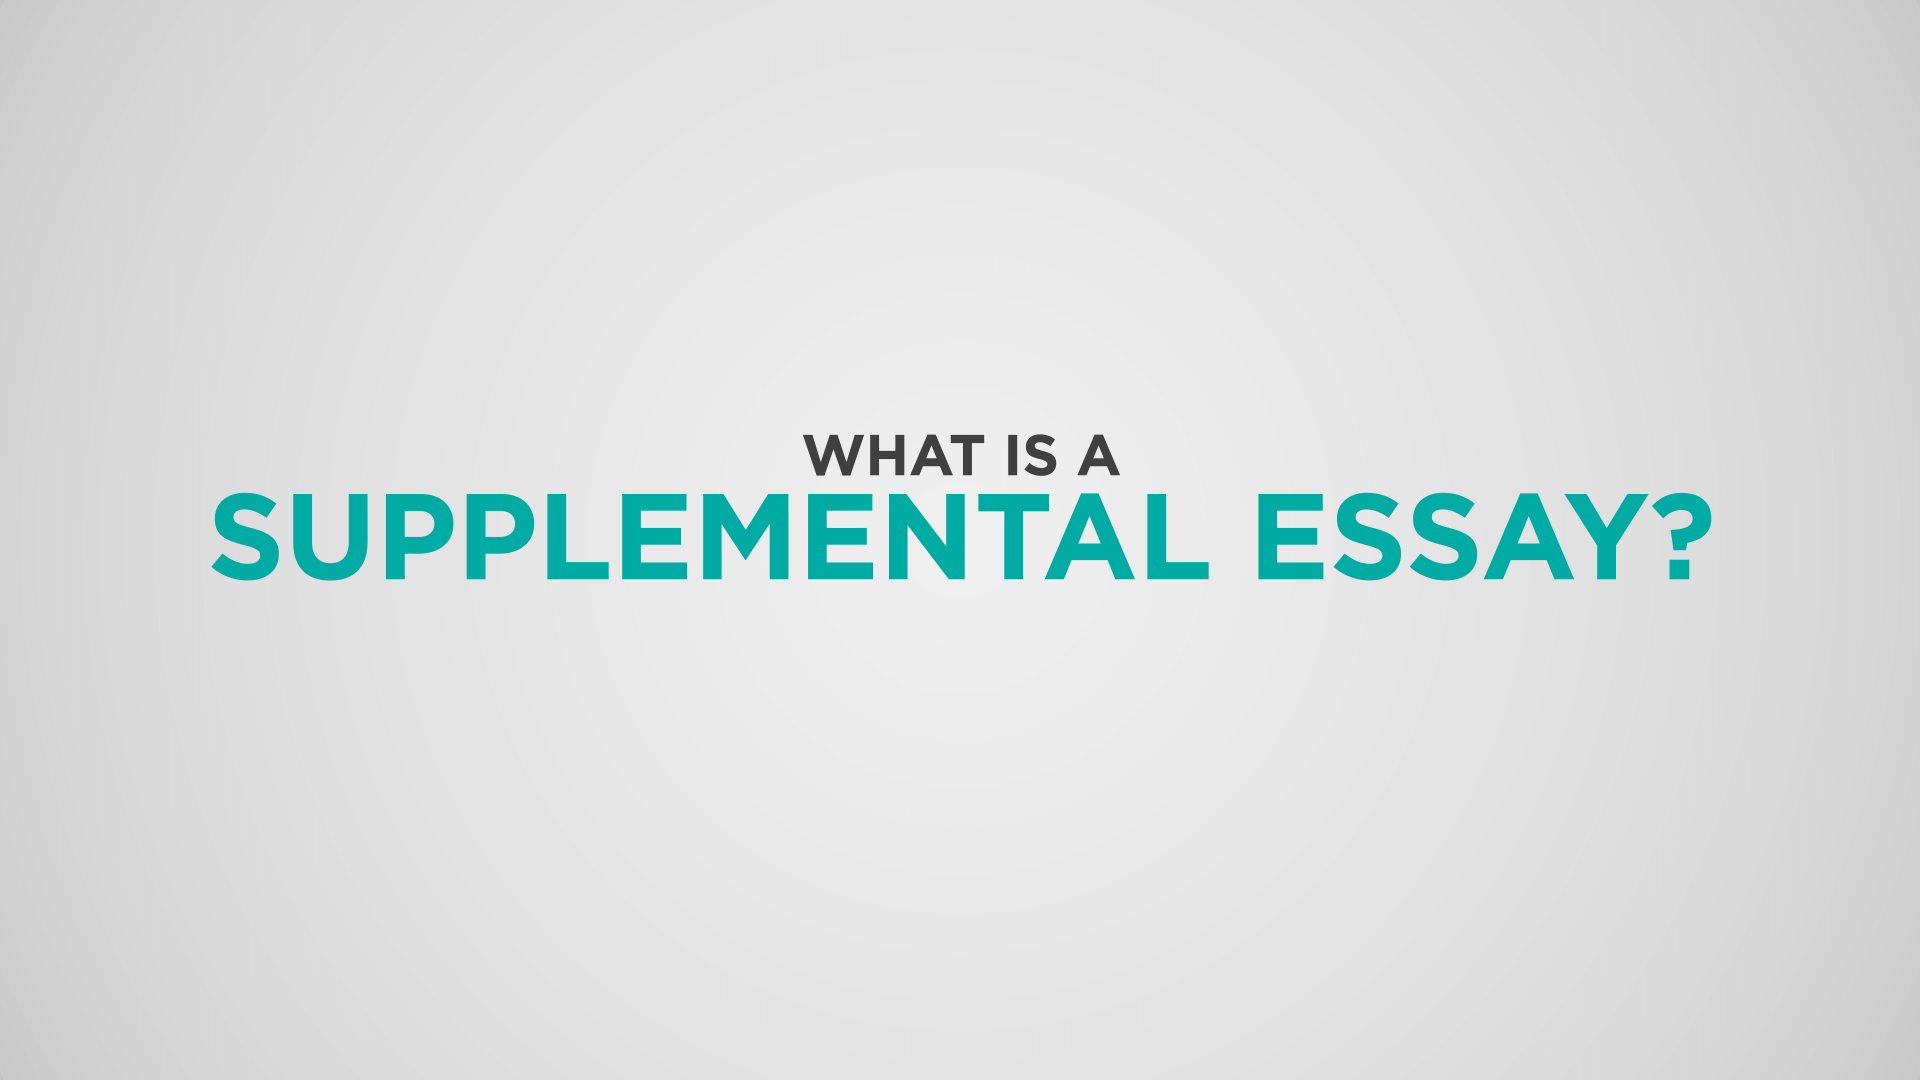 What is a Supplemental Essay?